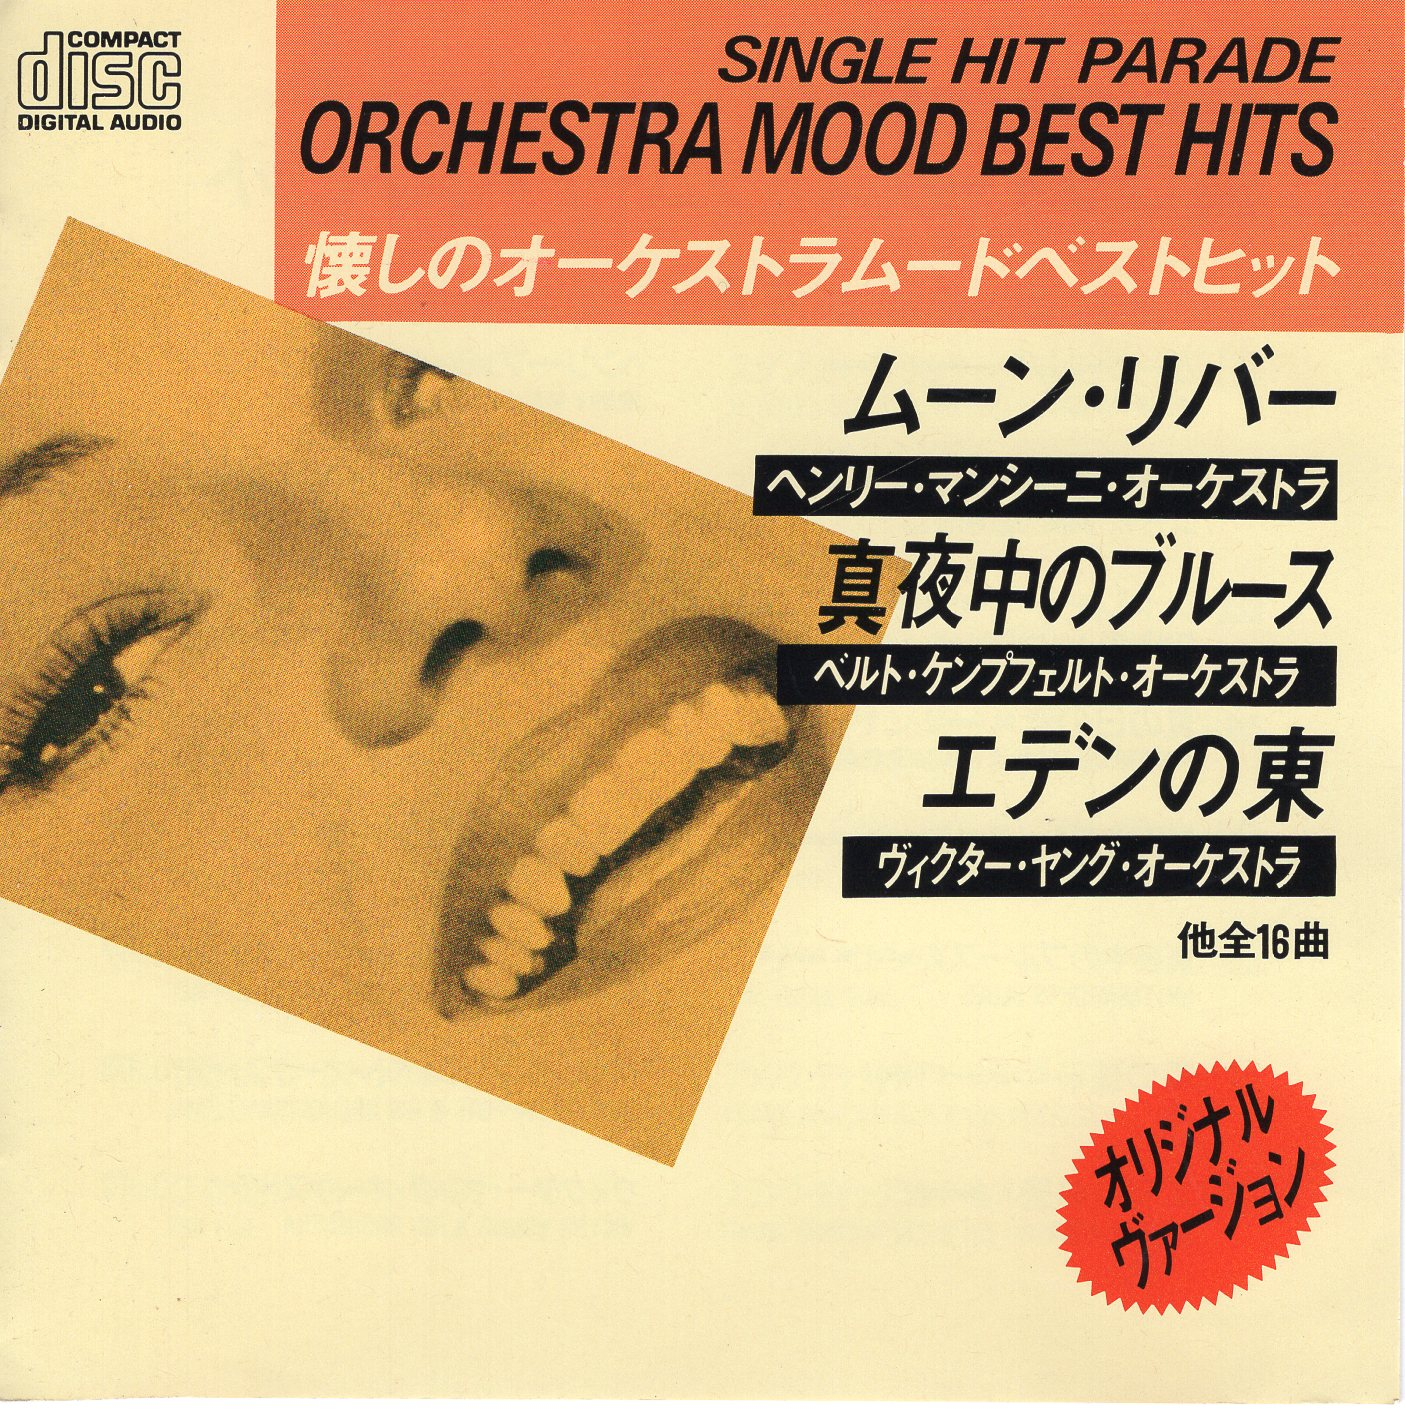 """Single Hits Parade: Orchestra Mood Best Hits"""